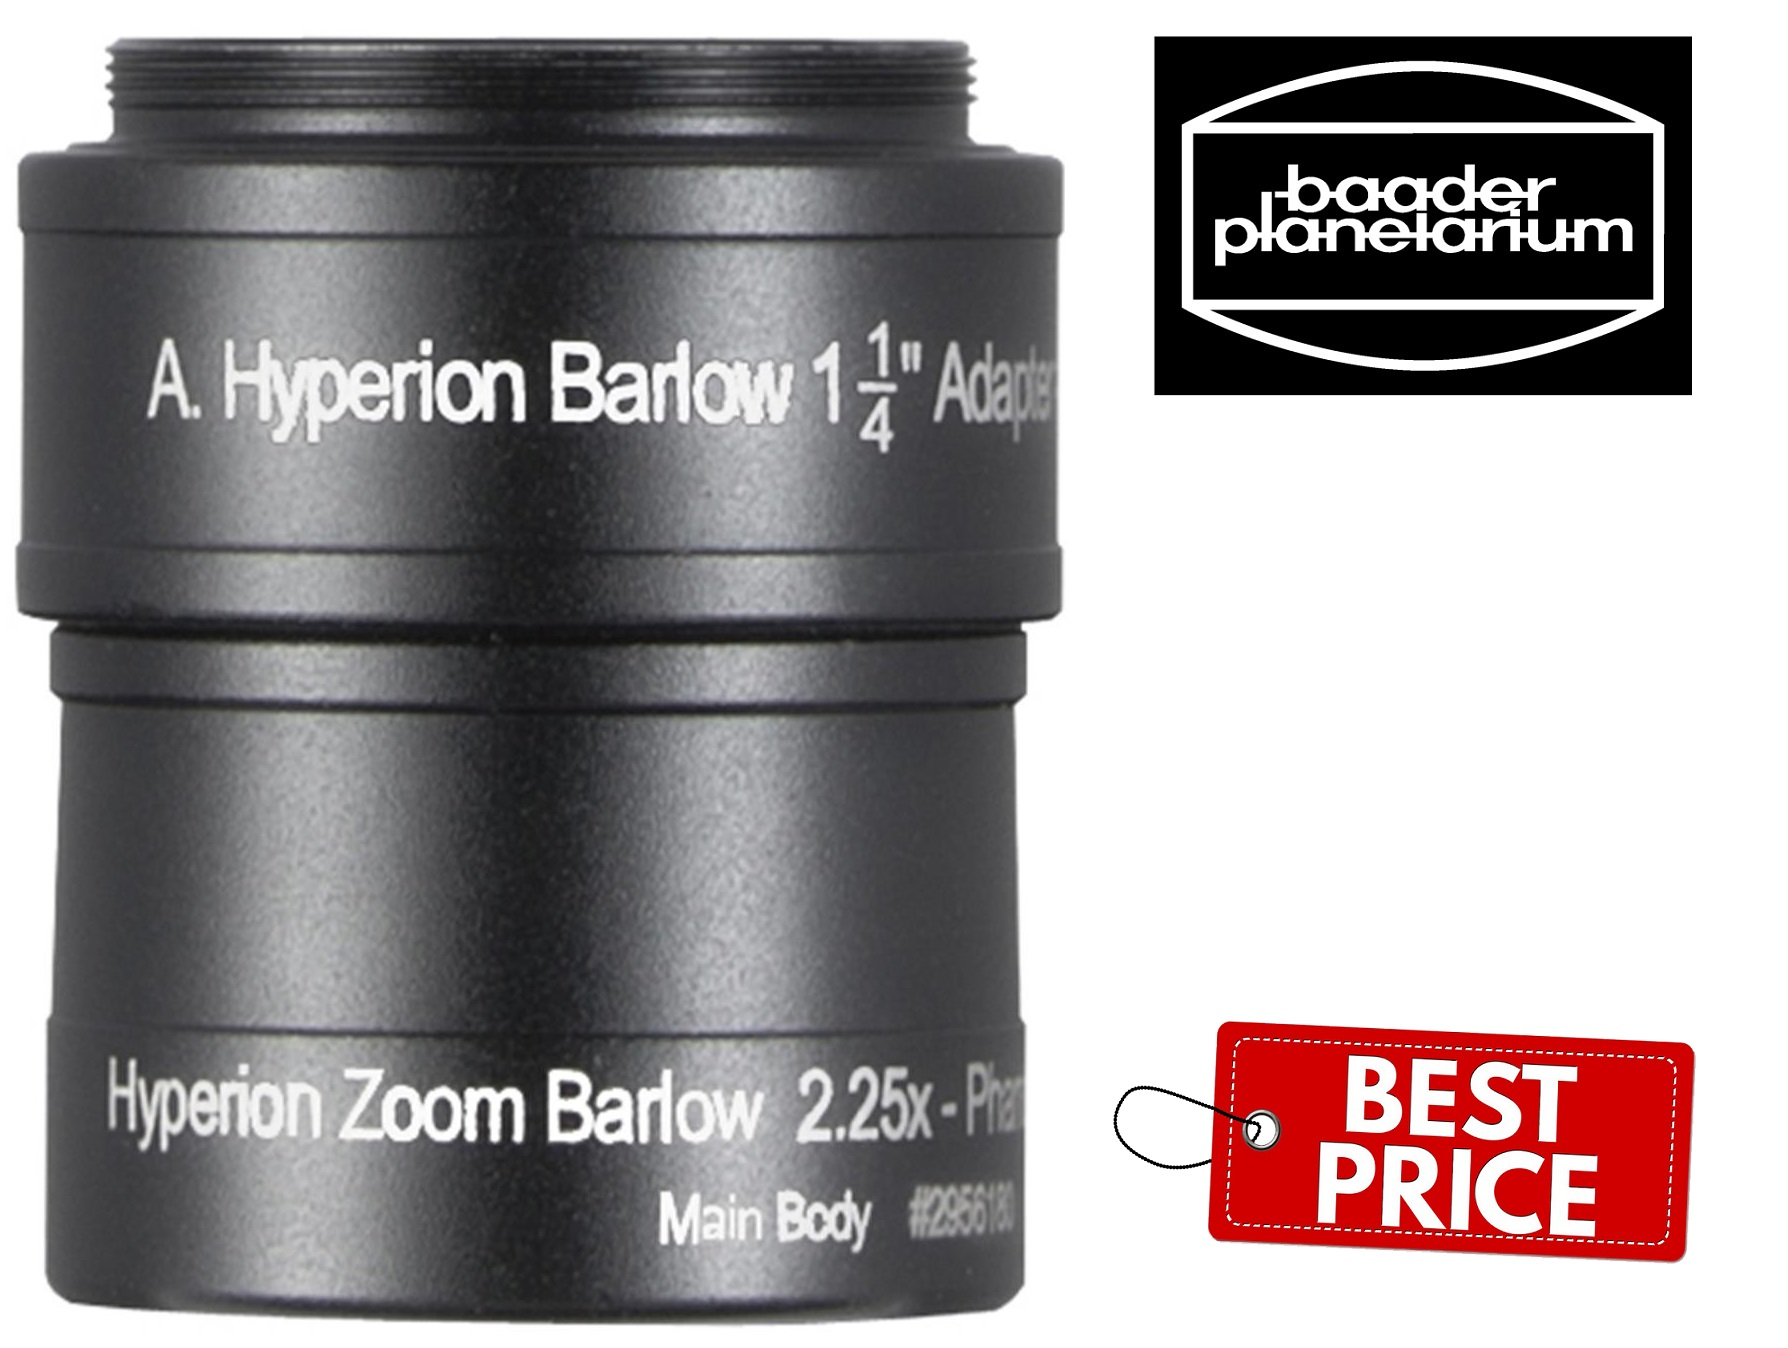 Baader 2.25x Hyperion Zoom Barlow